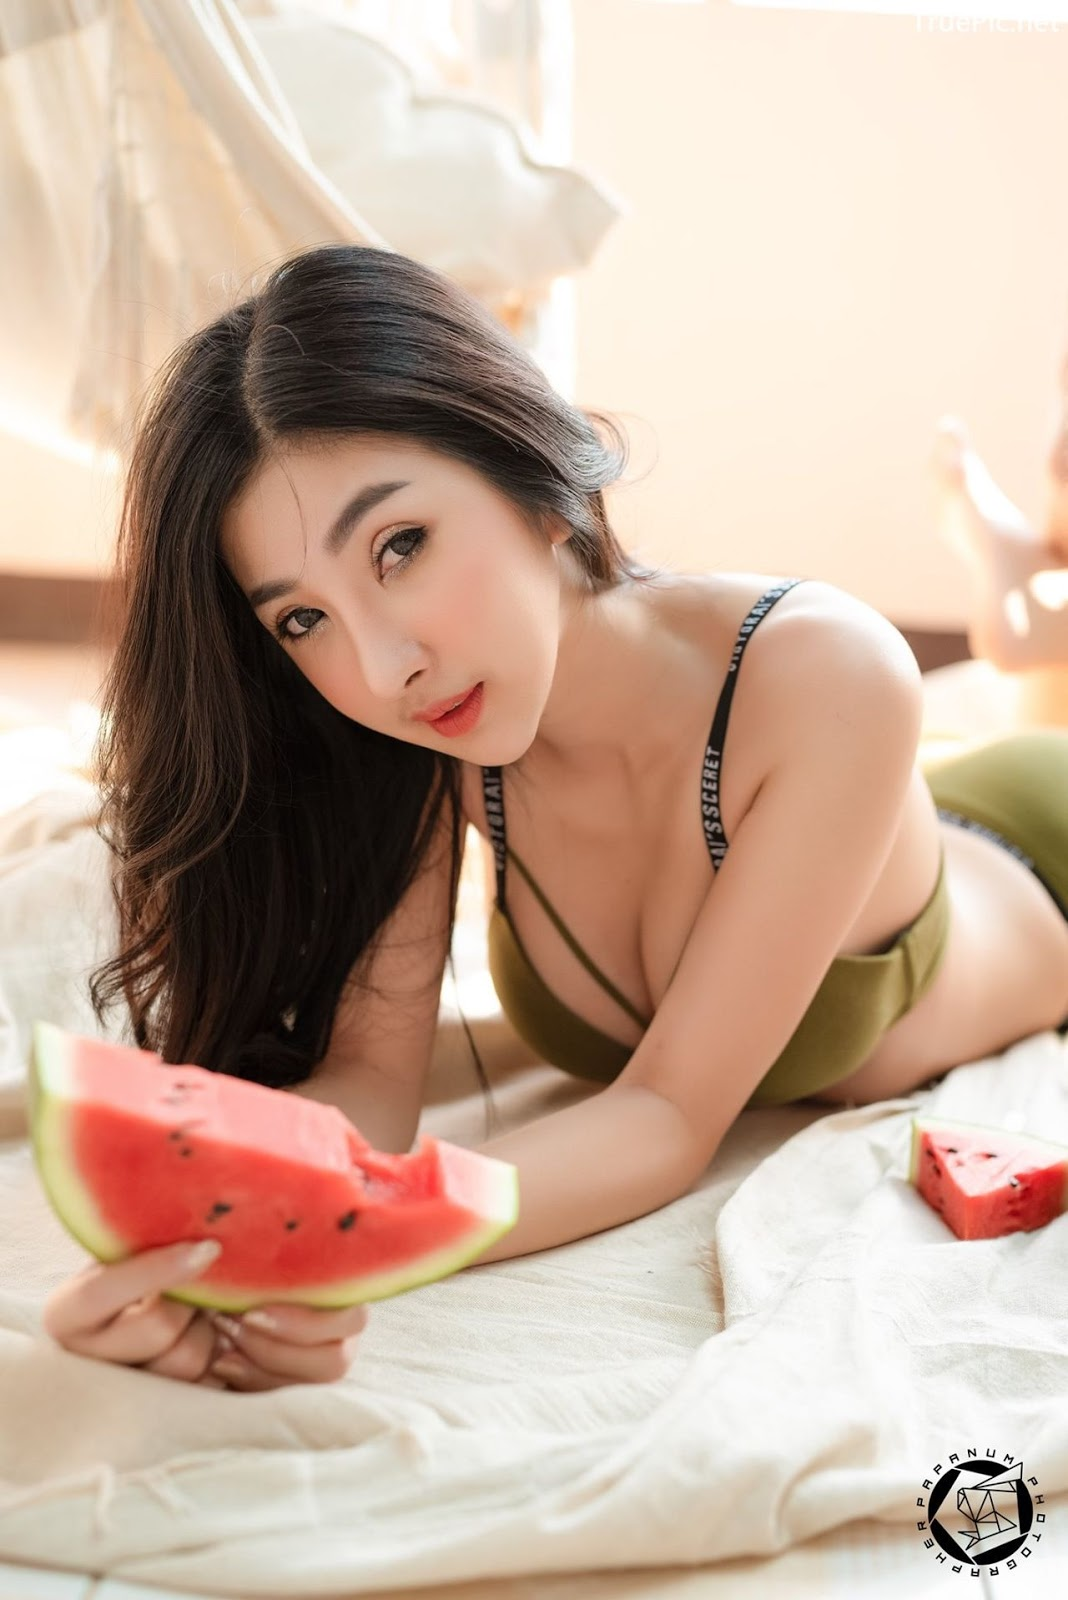 Image-Thailand-Sexy-Model-Pattamaporn-Keawkum-Concept-Sweet-Watermelon-TruePic.net- Picture-7